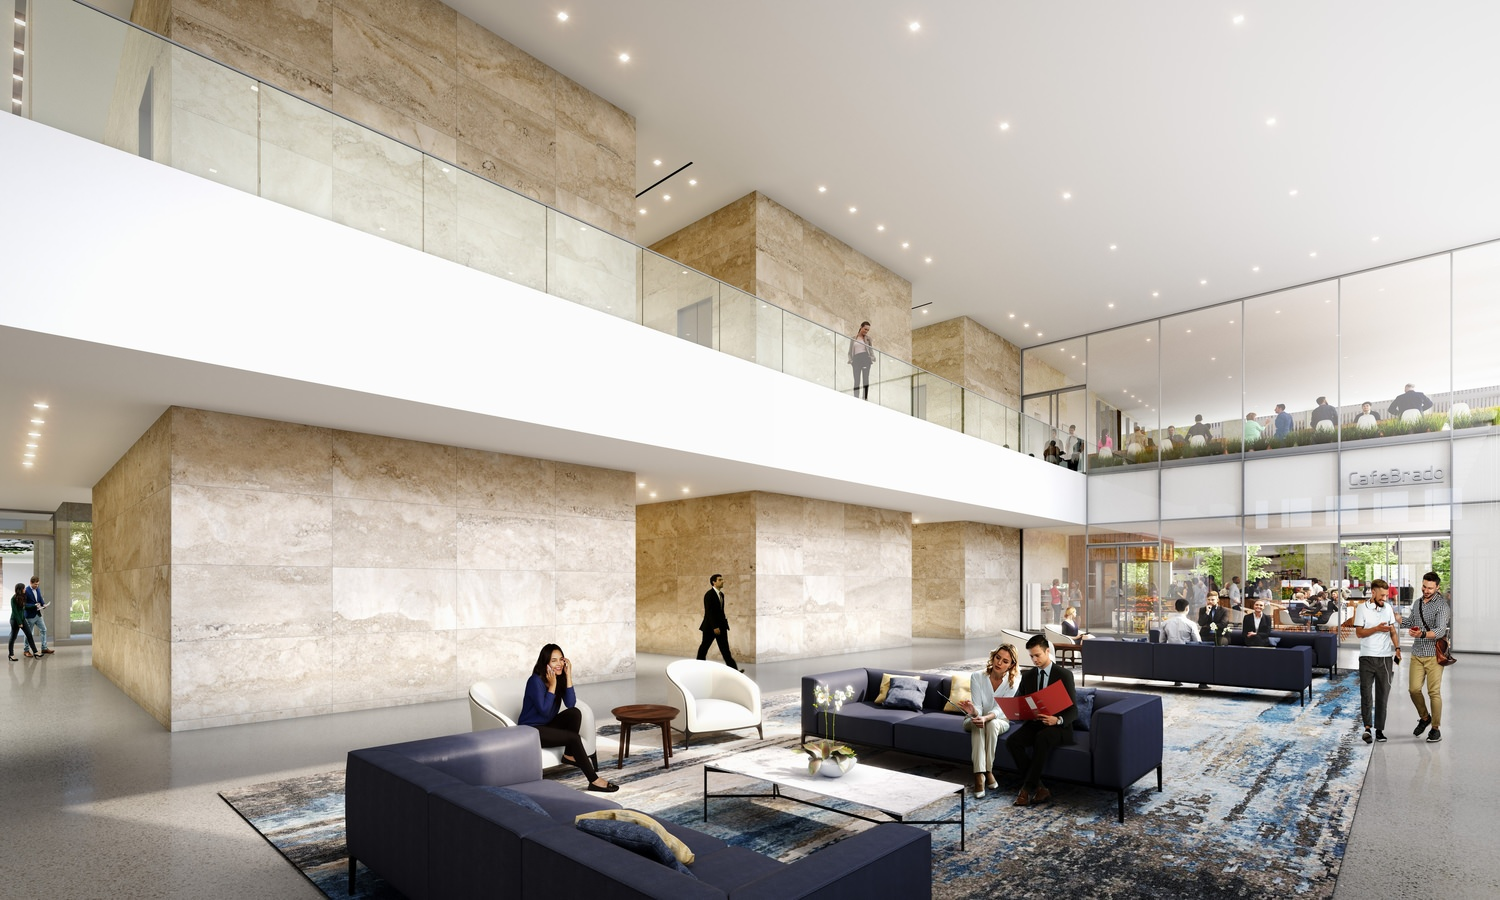 A group of people that are sitting on couches in the lobby of a building that has walkways above it.